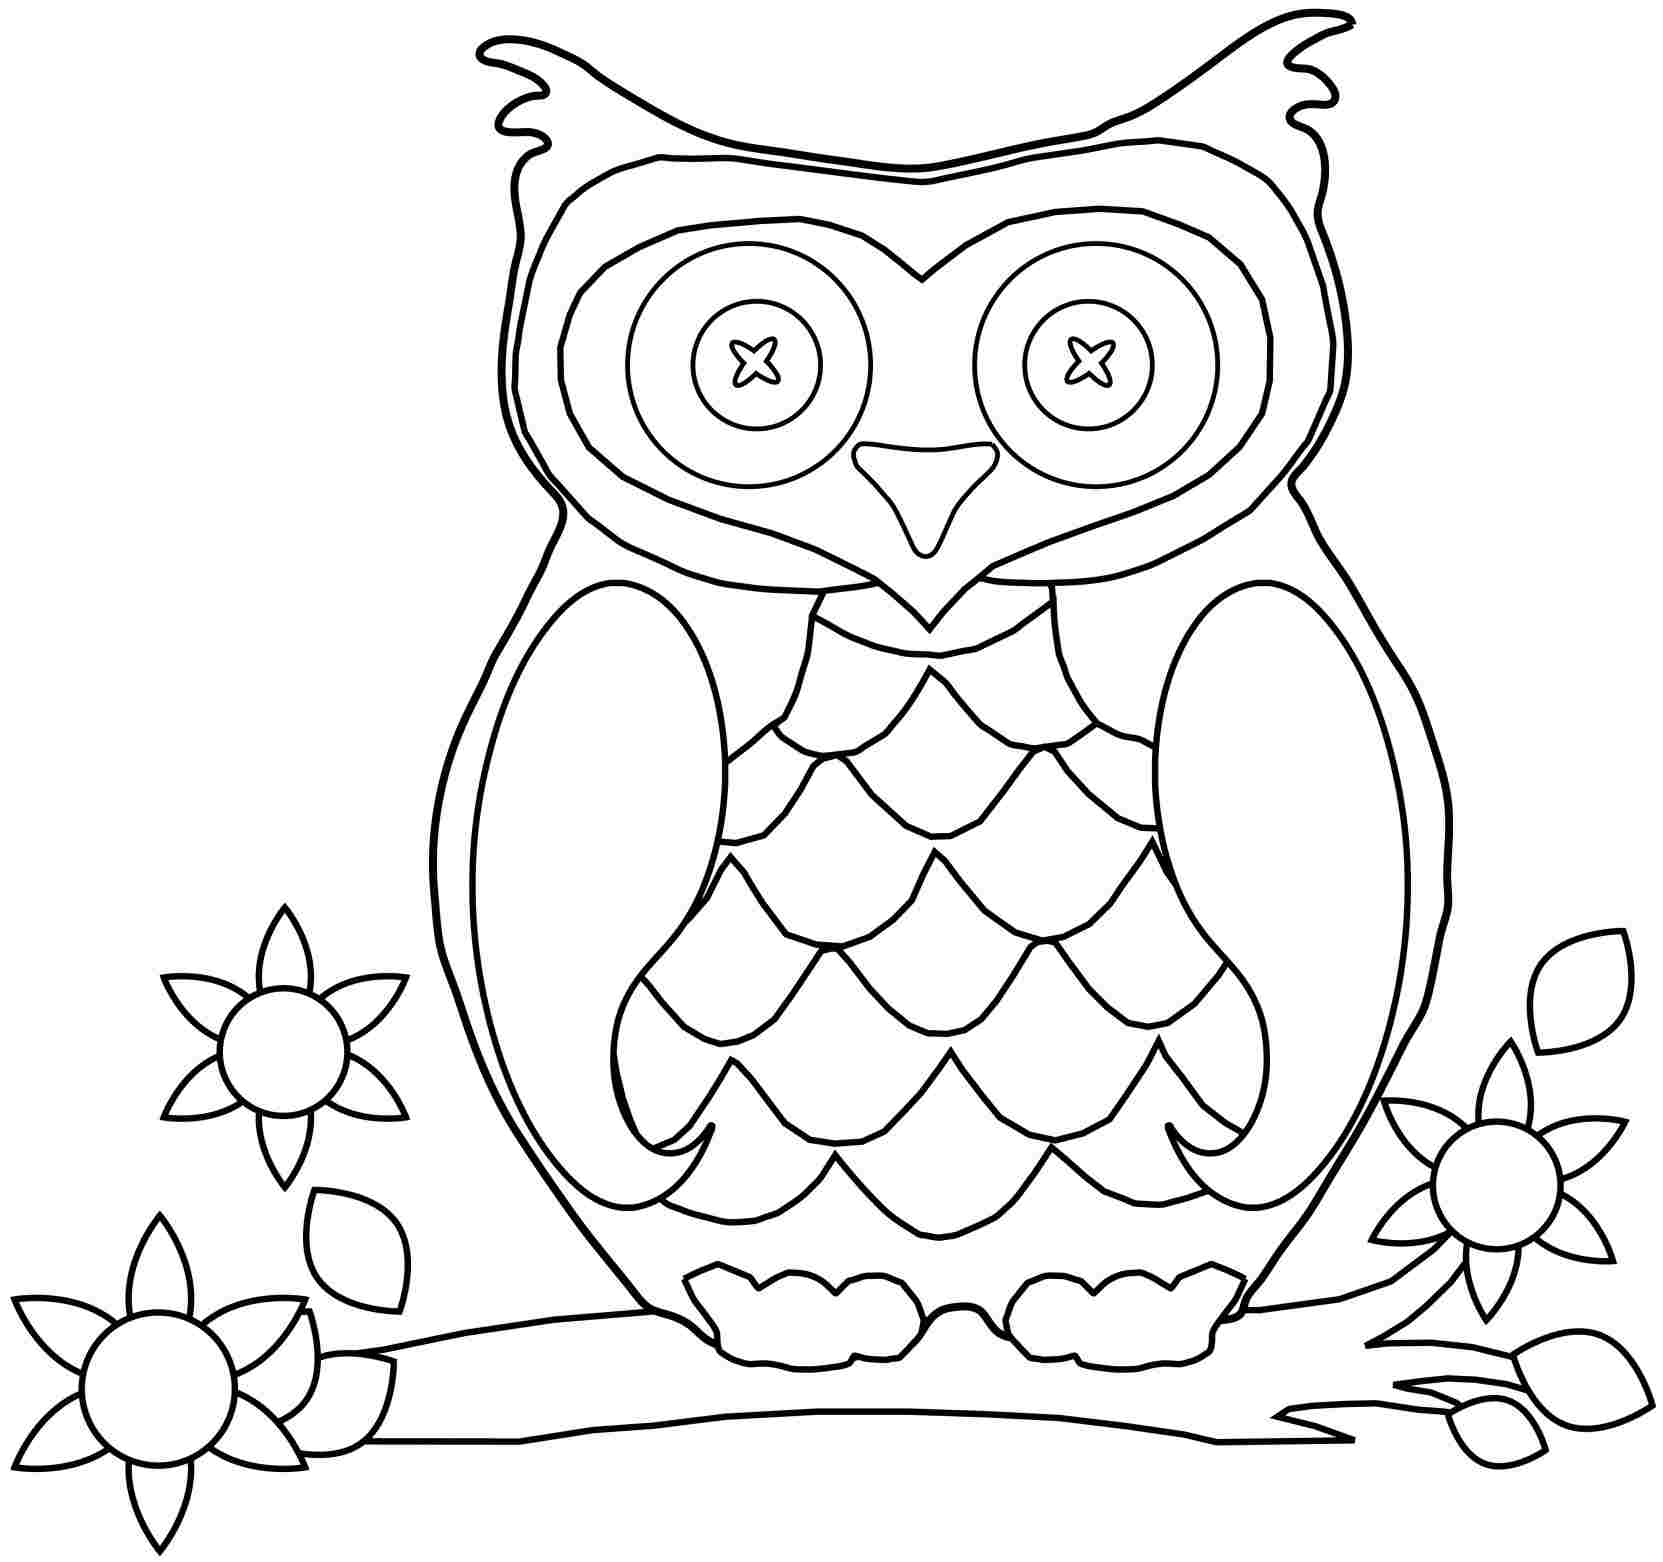 Free Animal Drawing To Print at GetDrawings.com   Free for personal ...